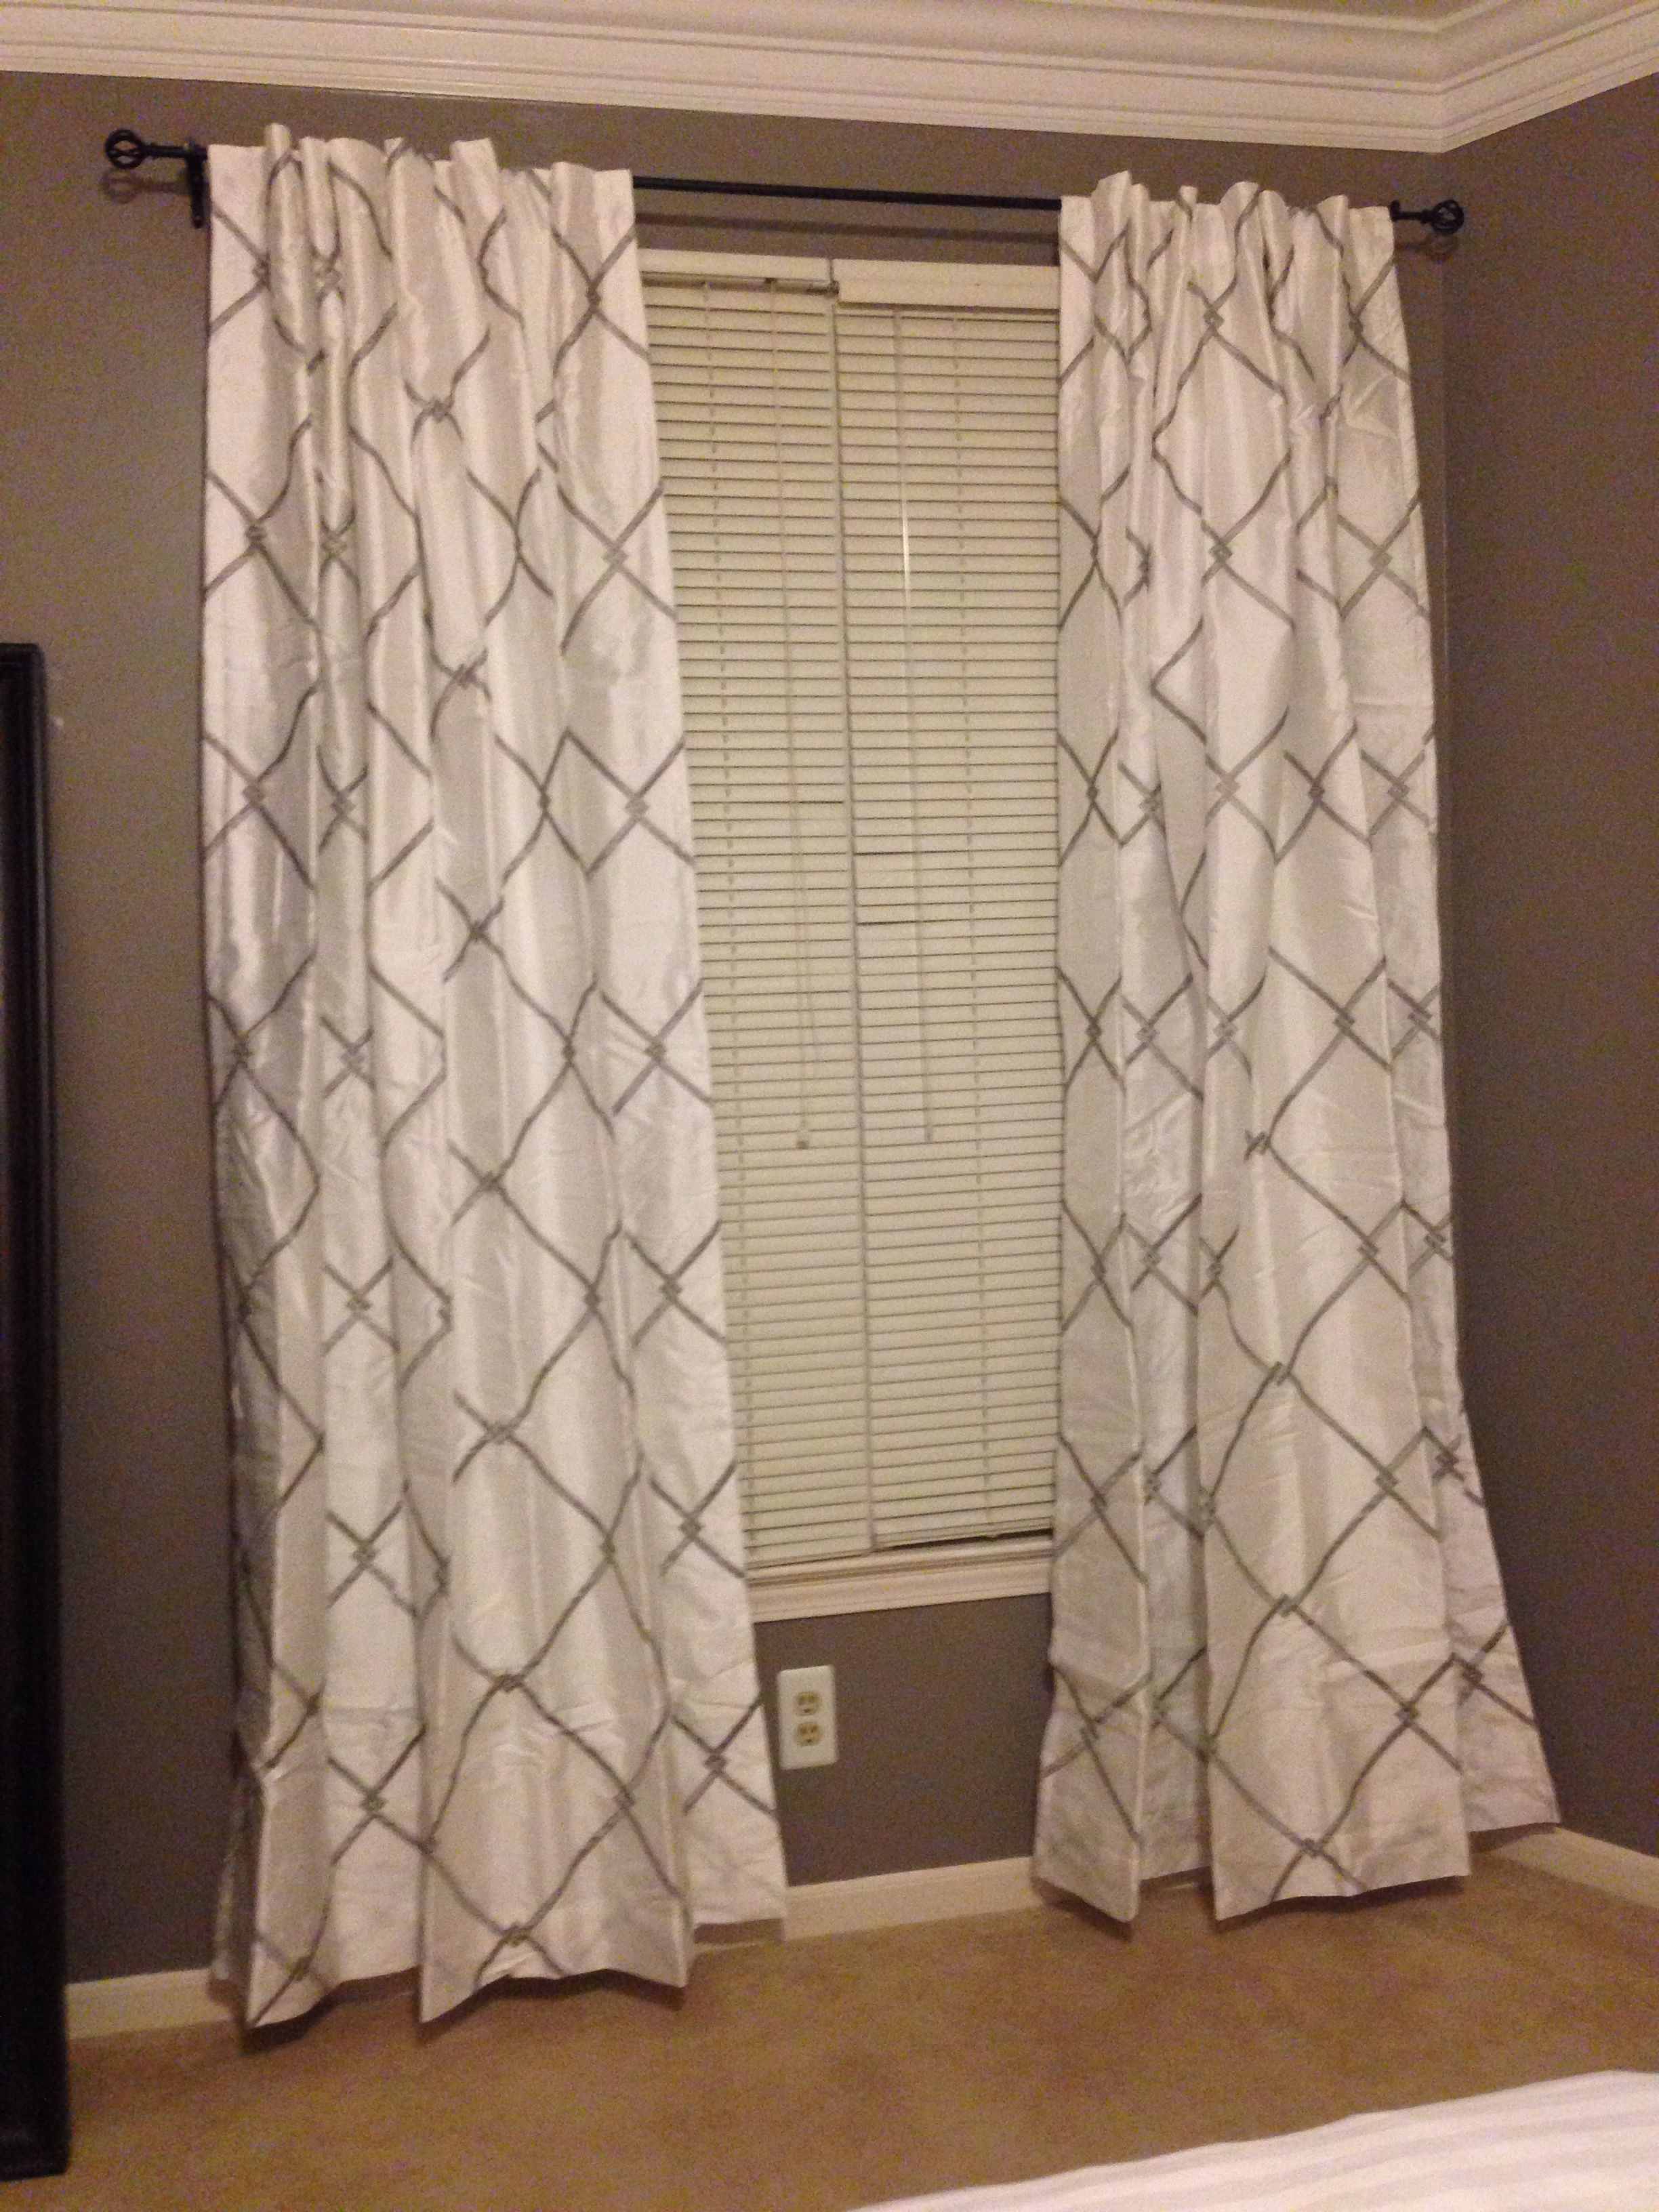 New curtains Bombay Garrison from bed bath and beyond in white